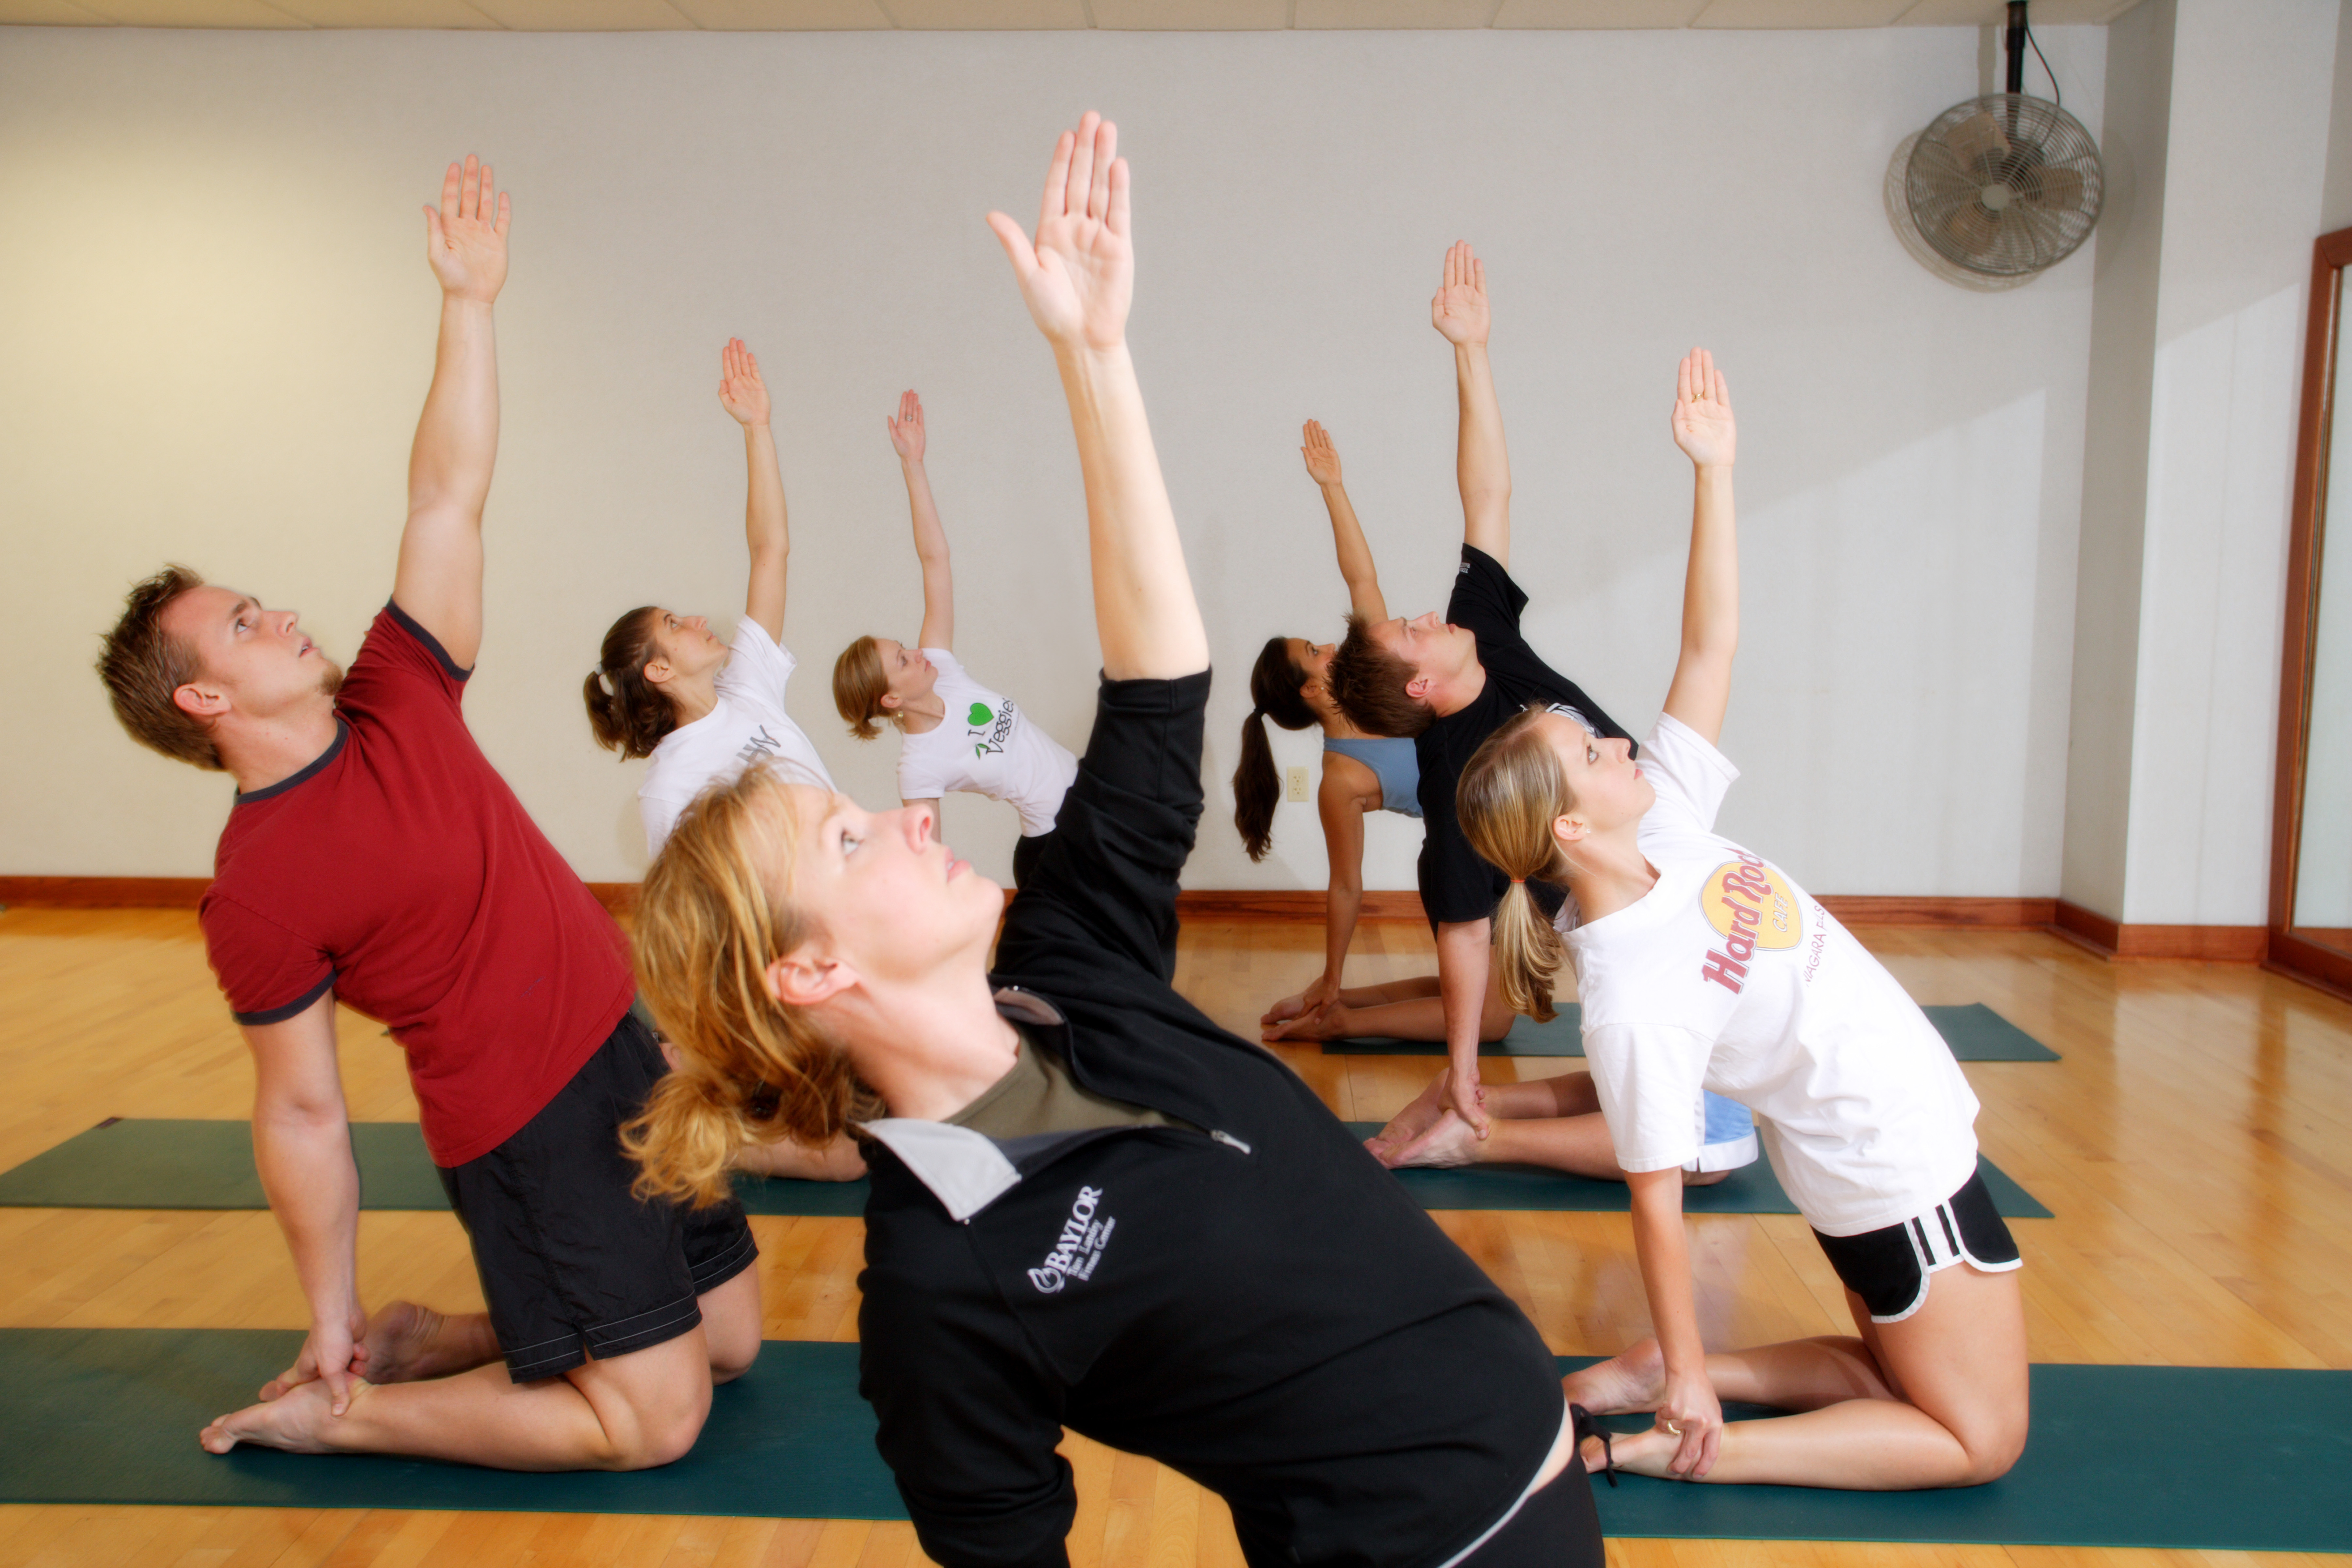 Yoga classes at BTLFC